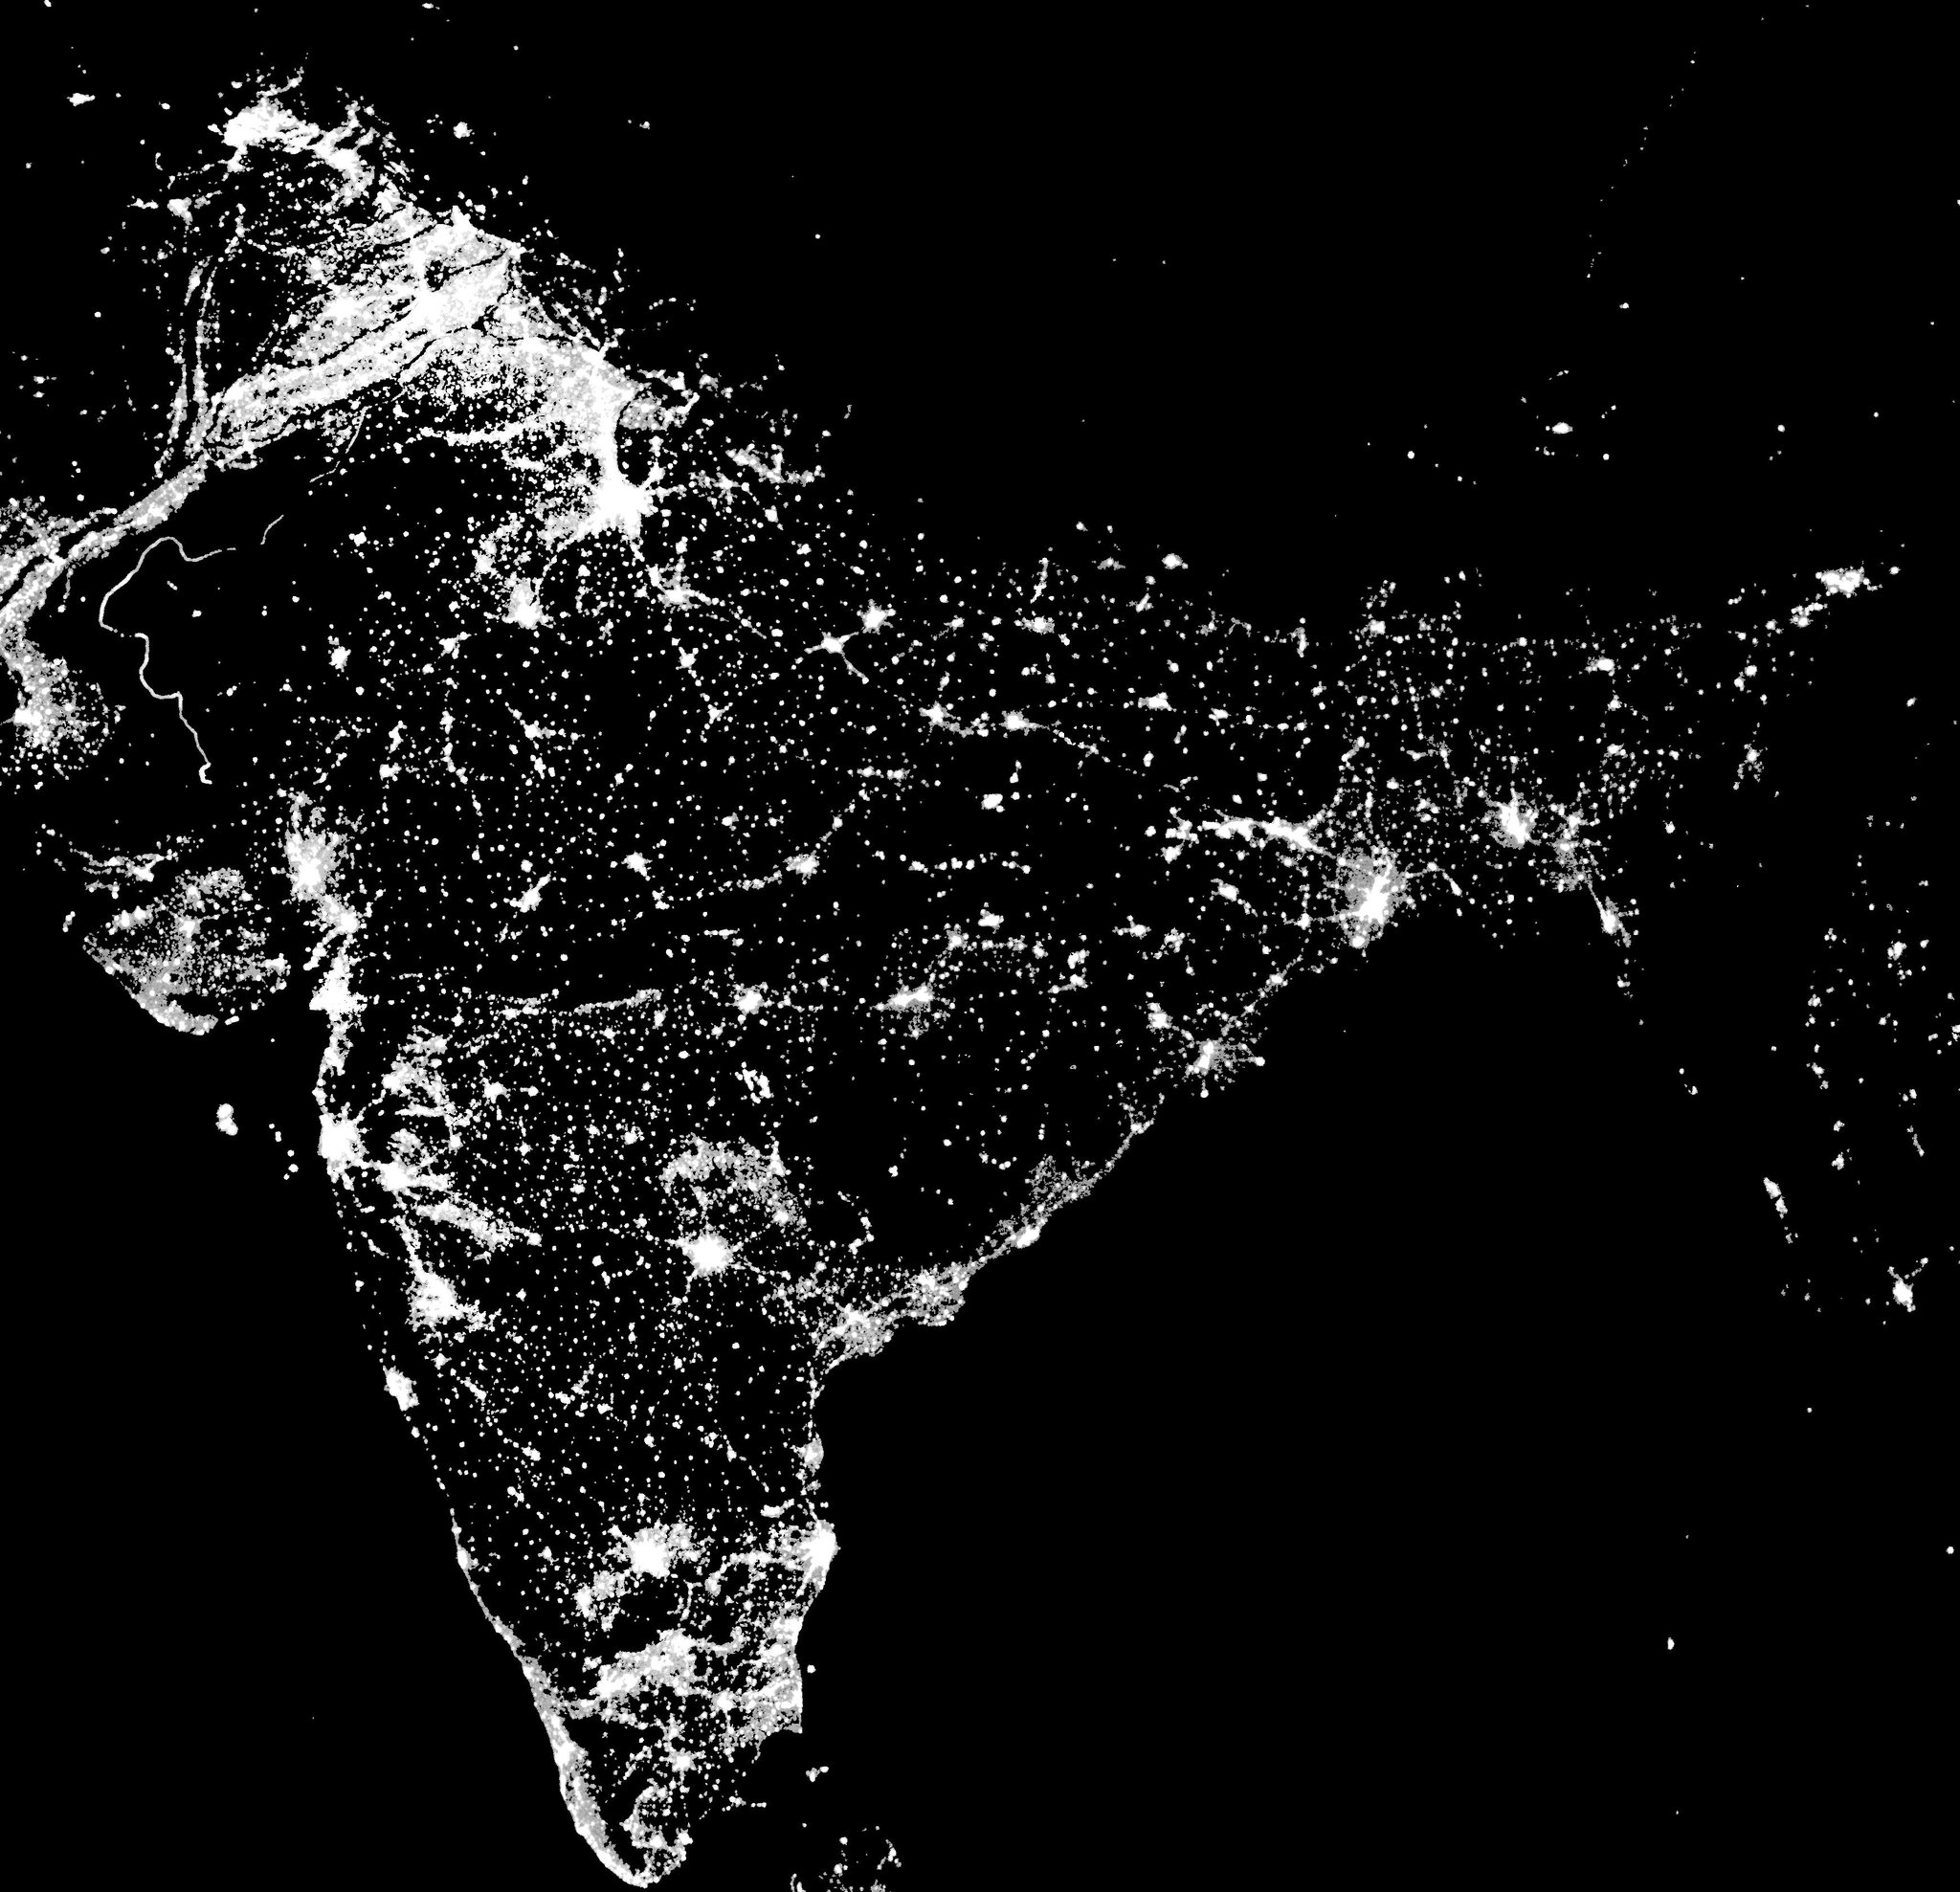 Nasa earth on twitter that beautiful image of nighttime diwali nasa earth on twitter that beautiful image of nighttime diwali lights in india its a really old fake httpstu3wtmayxyo httpstbyrr4sxjwz gumiabroncs Choice Image